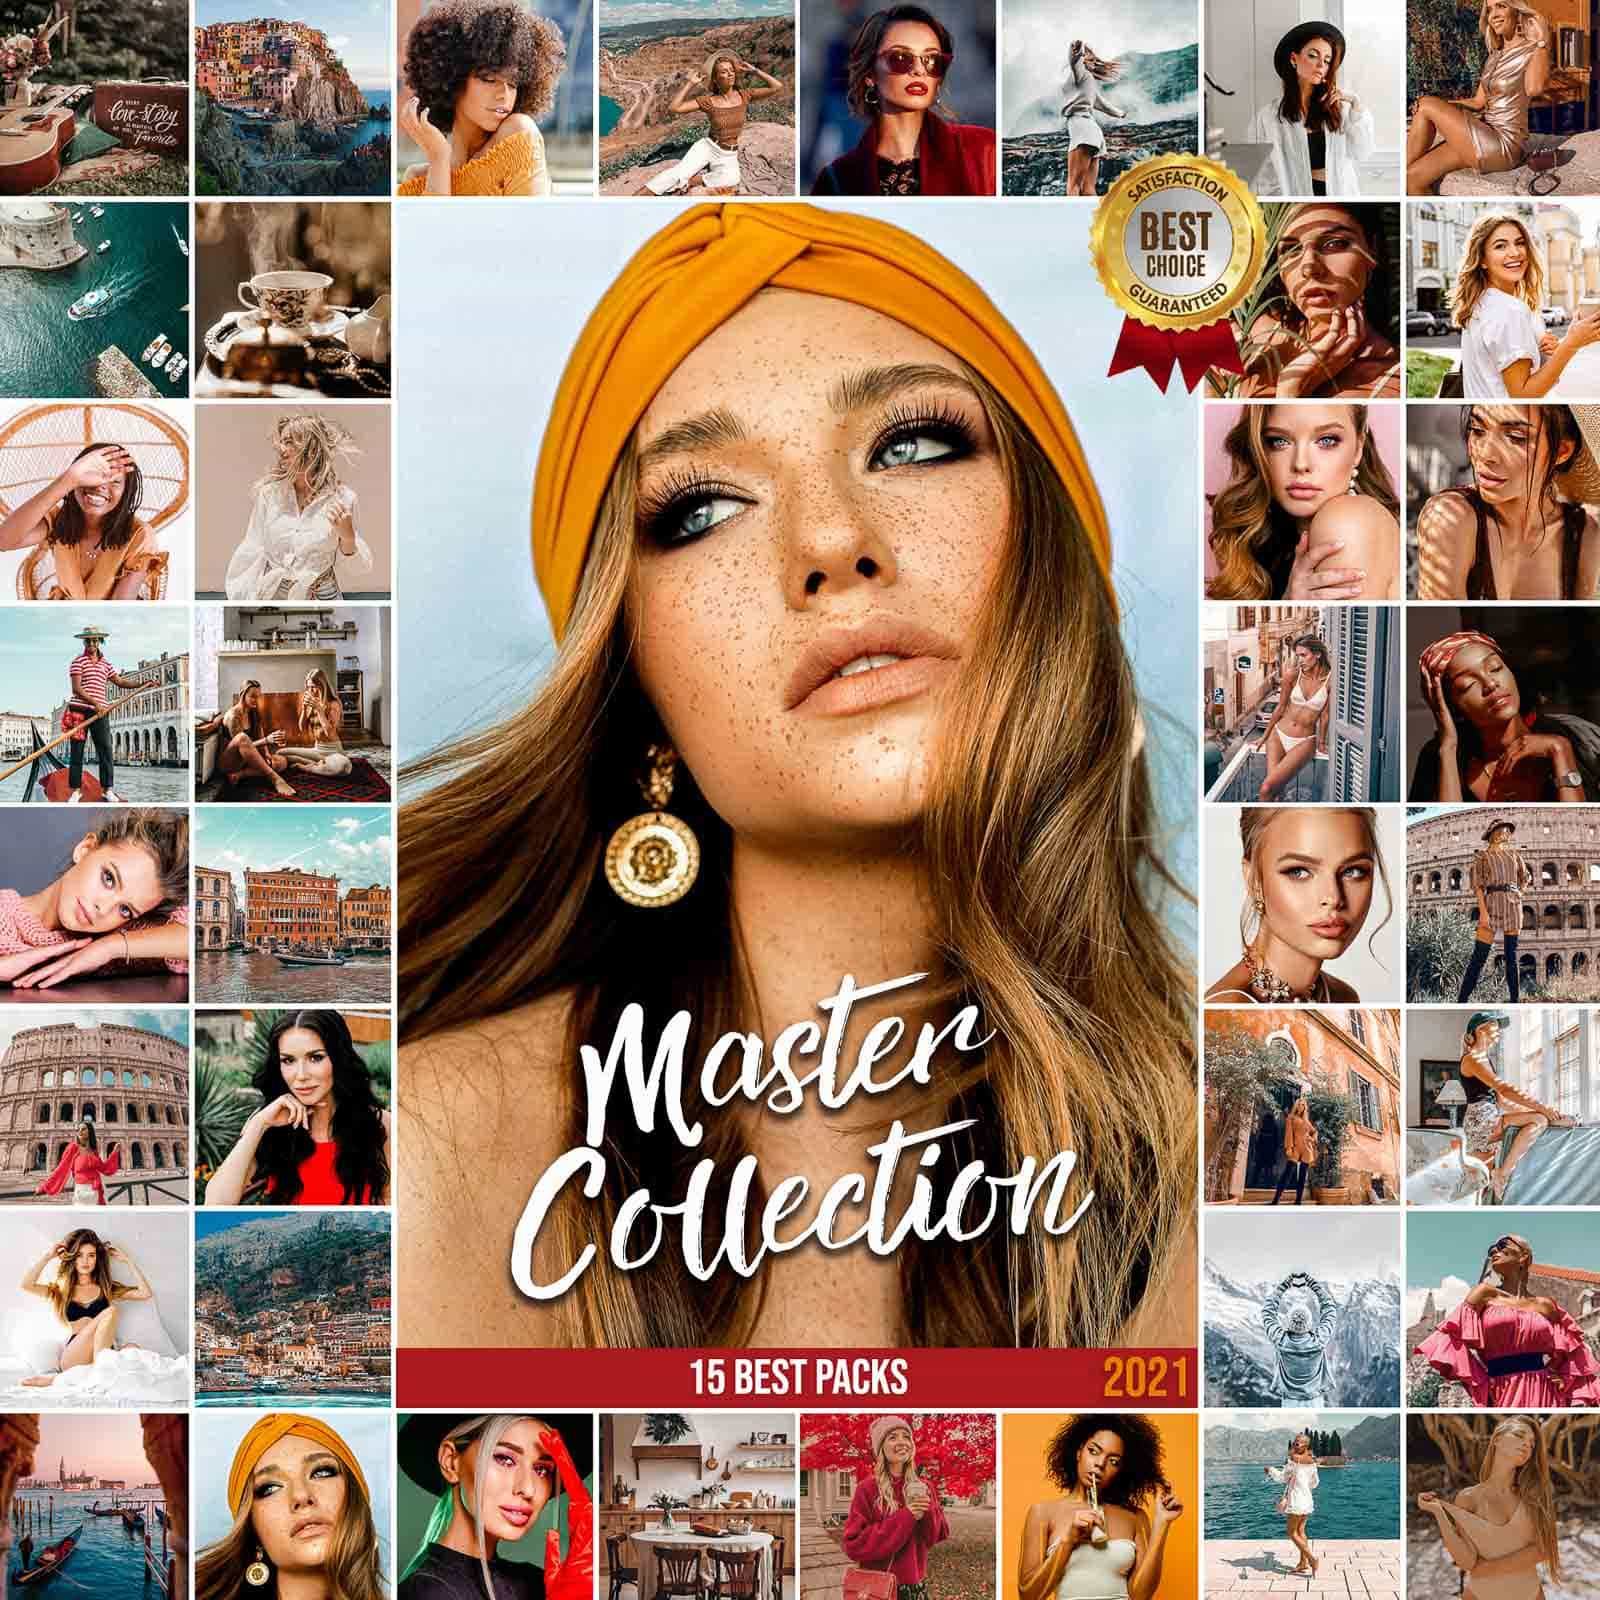 MASTER COLLECTION MOBILE (12 PACKS)